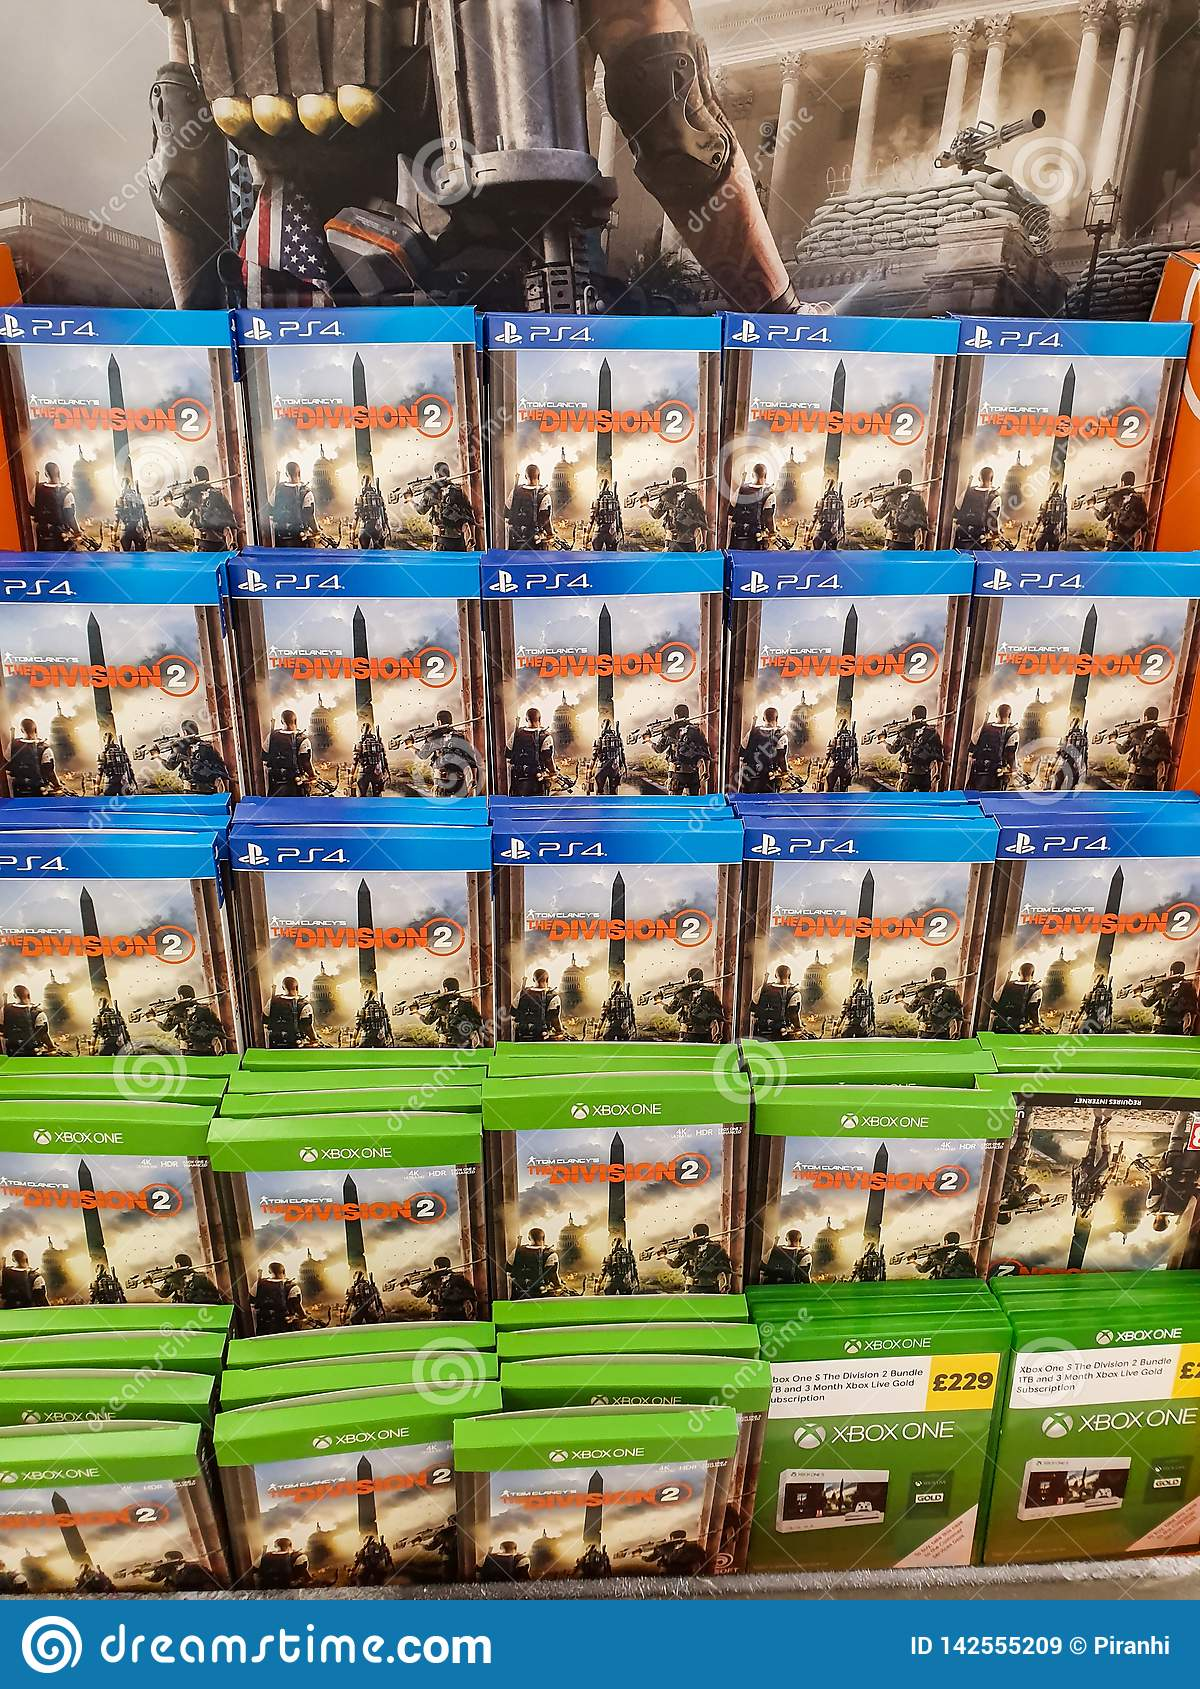 SHEFFIELD, UK - 20TH MARCH 2019: Division 2 for sale in Tesco for both the XBox One and Playstation 4